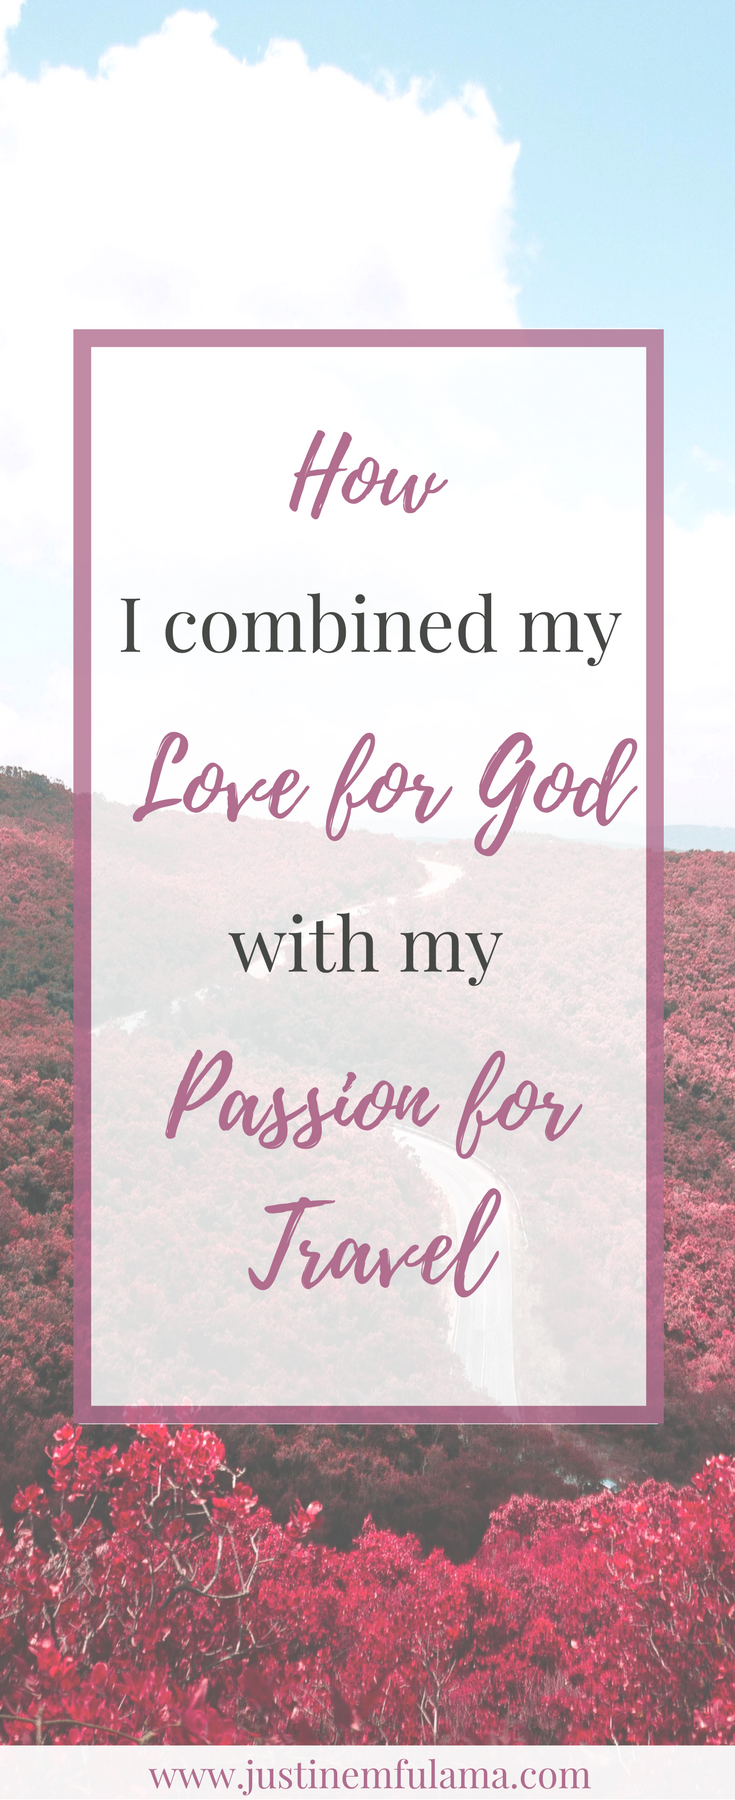 How I combined my Love for God with my Passion for Travel